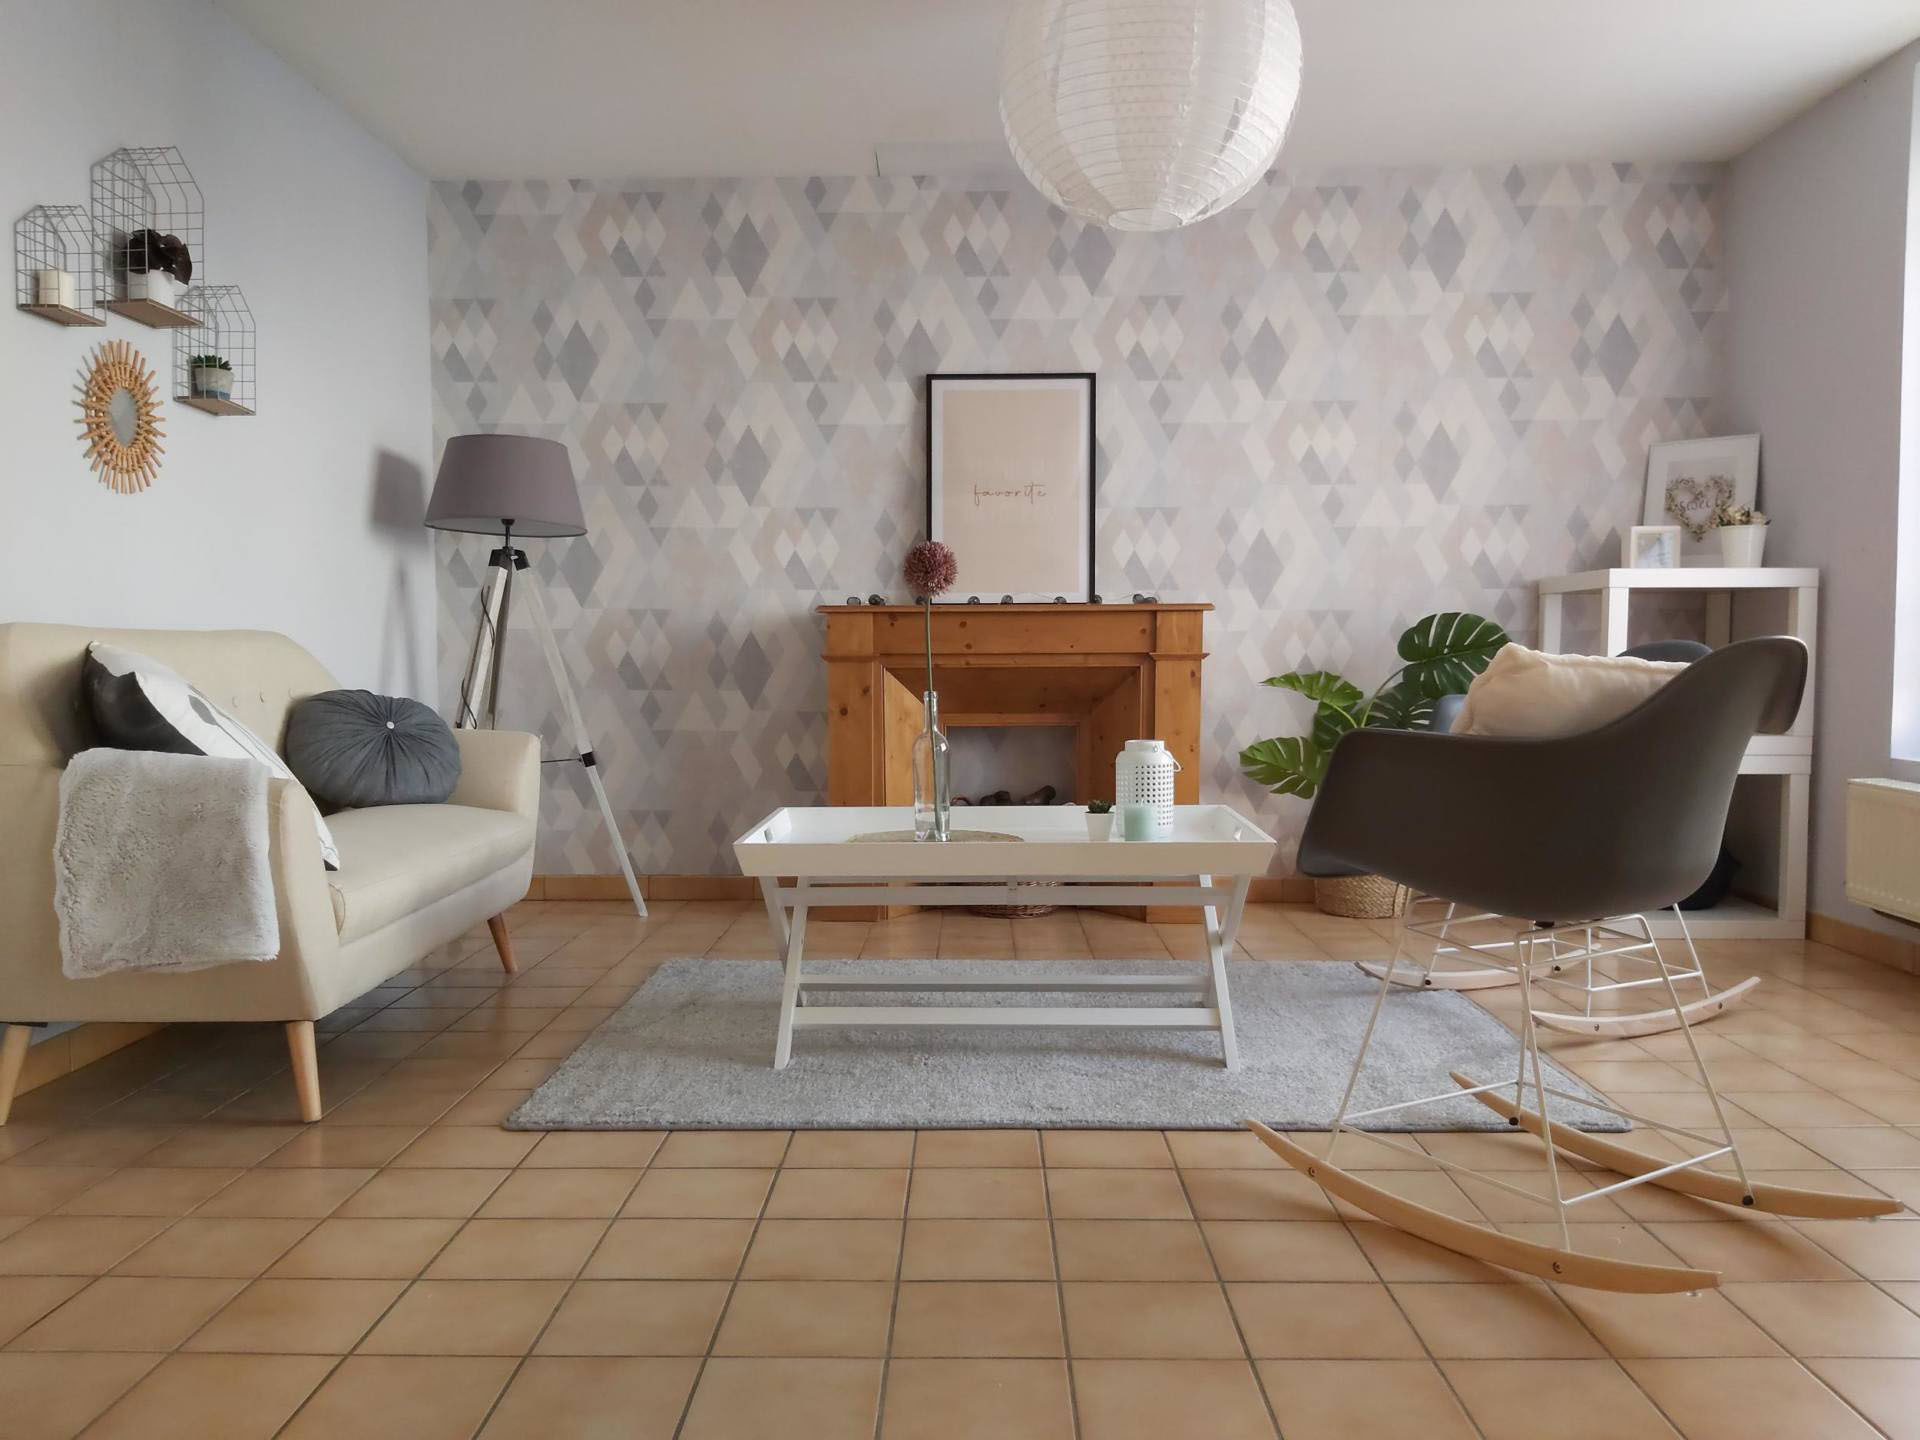 après Home staging